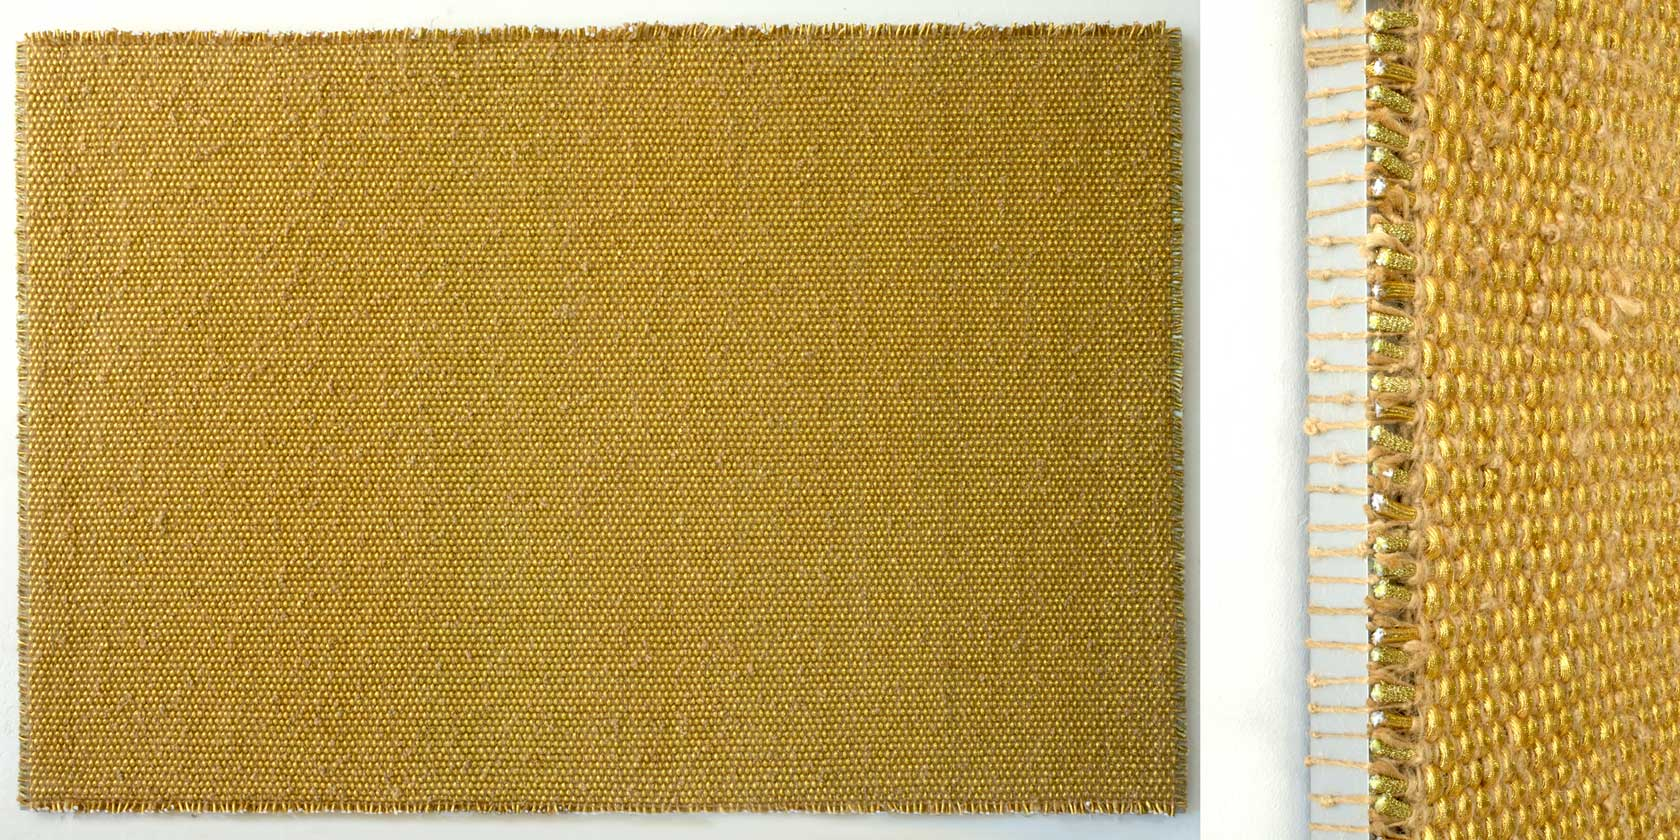 DANI MARTI   The Story of I Am (Gold)  [full and detail view] 2017 polyester, polypropylene, metallic thread, sisal rope on aluminium frame 170 x 255 x 5 cm